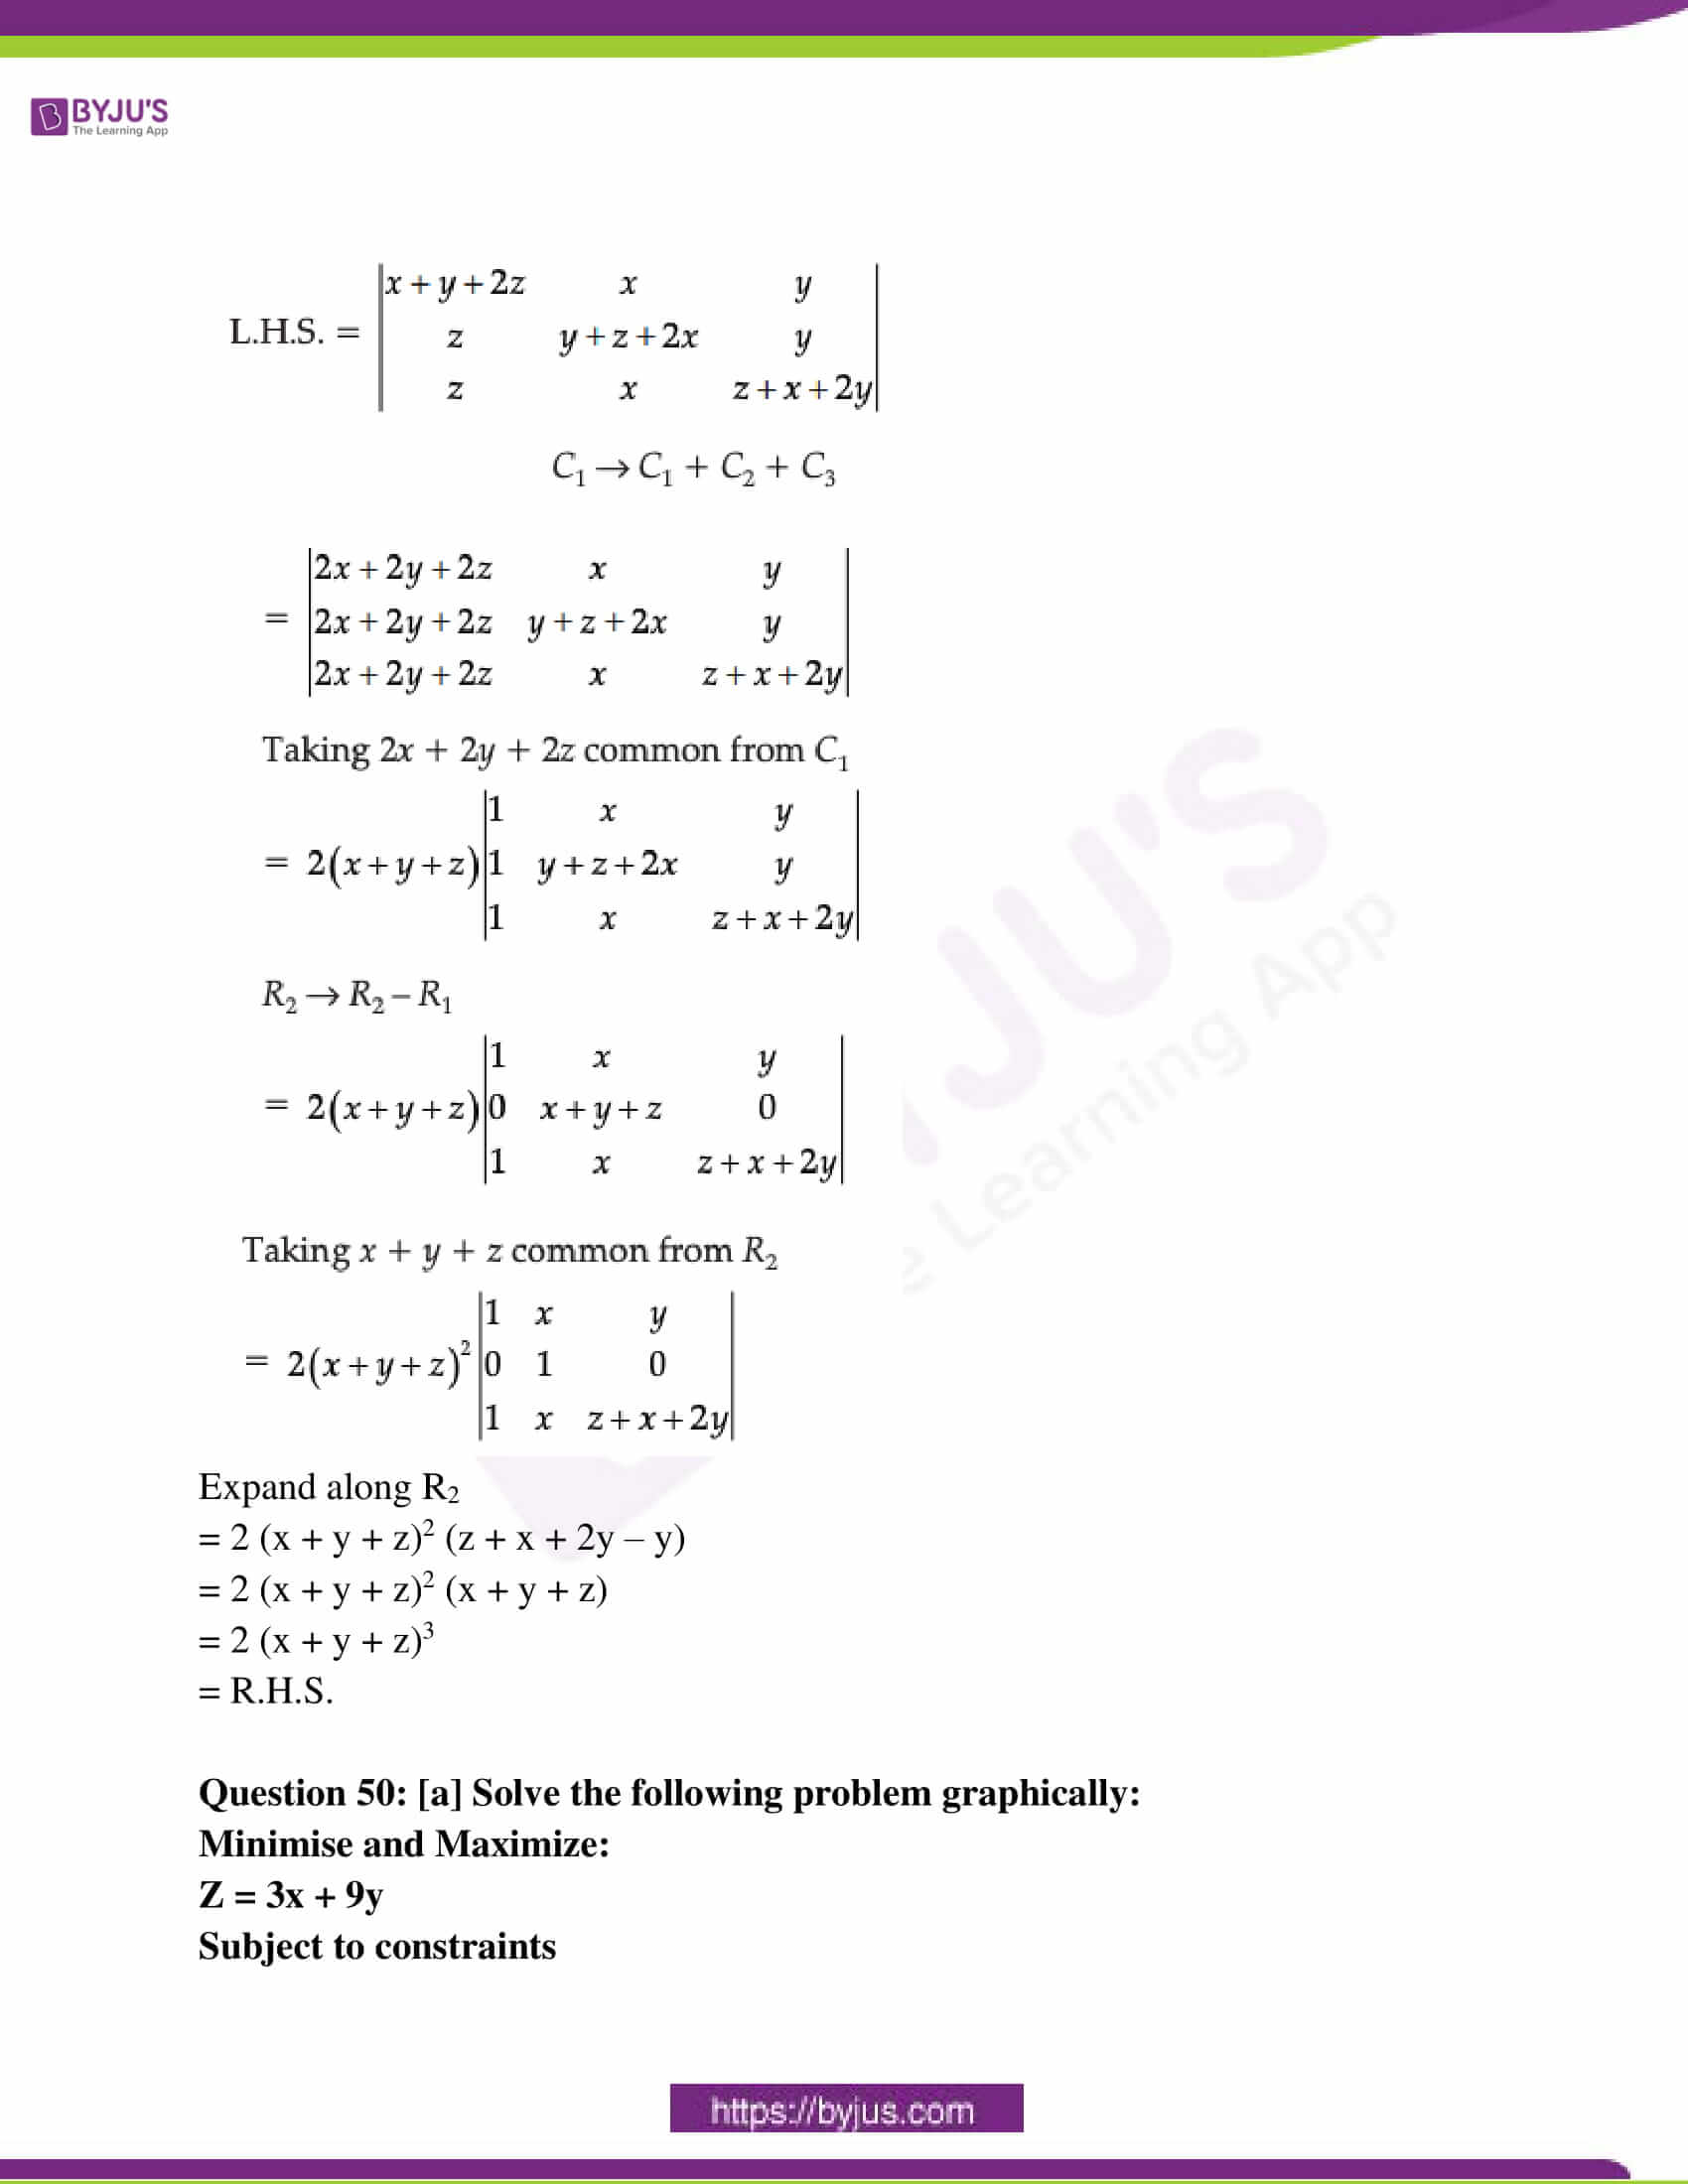 kseeb class 12 exam question paper solutions march 2018 27